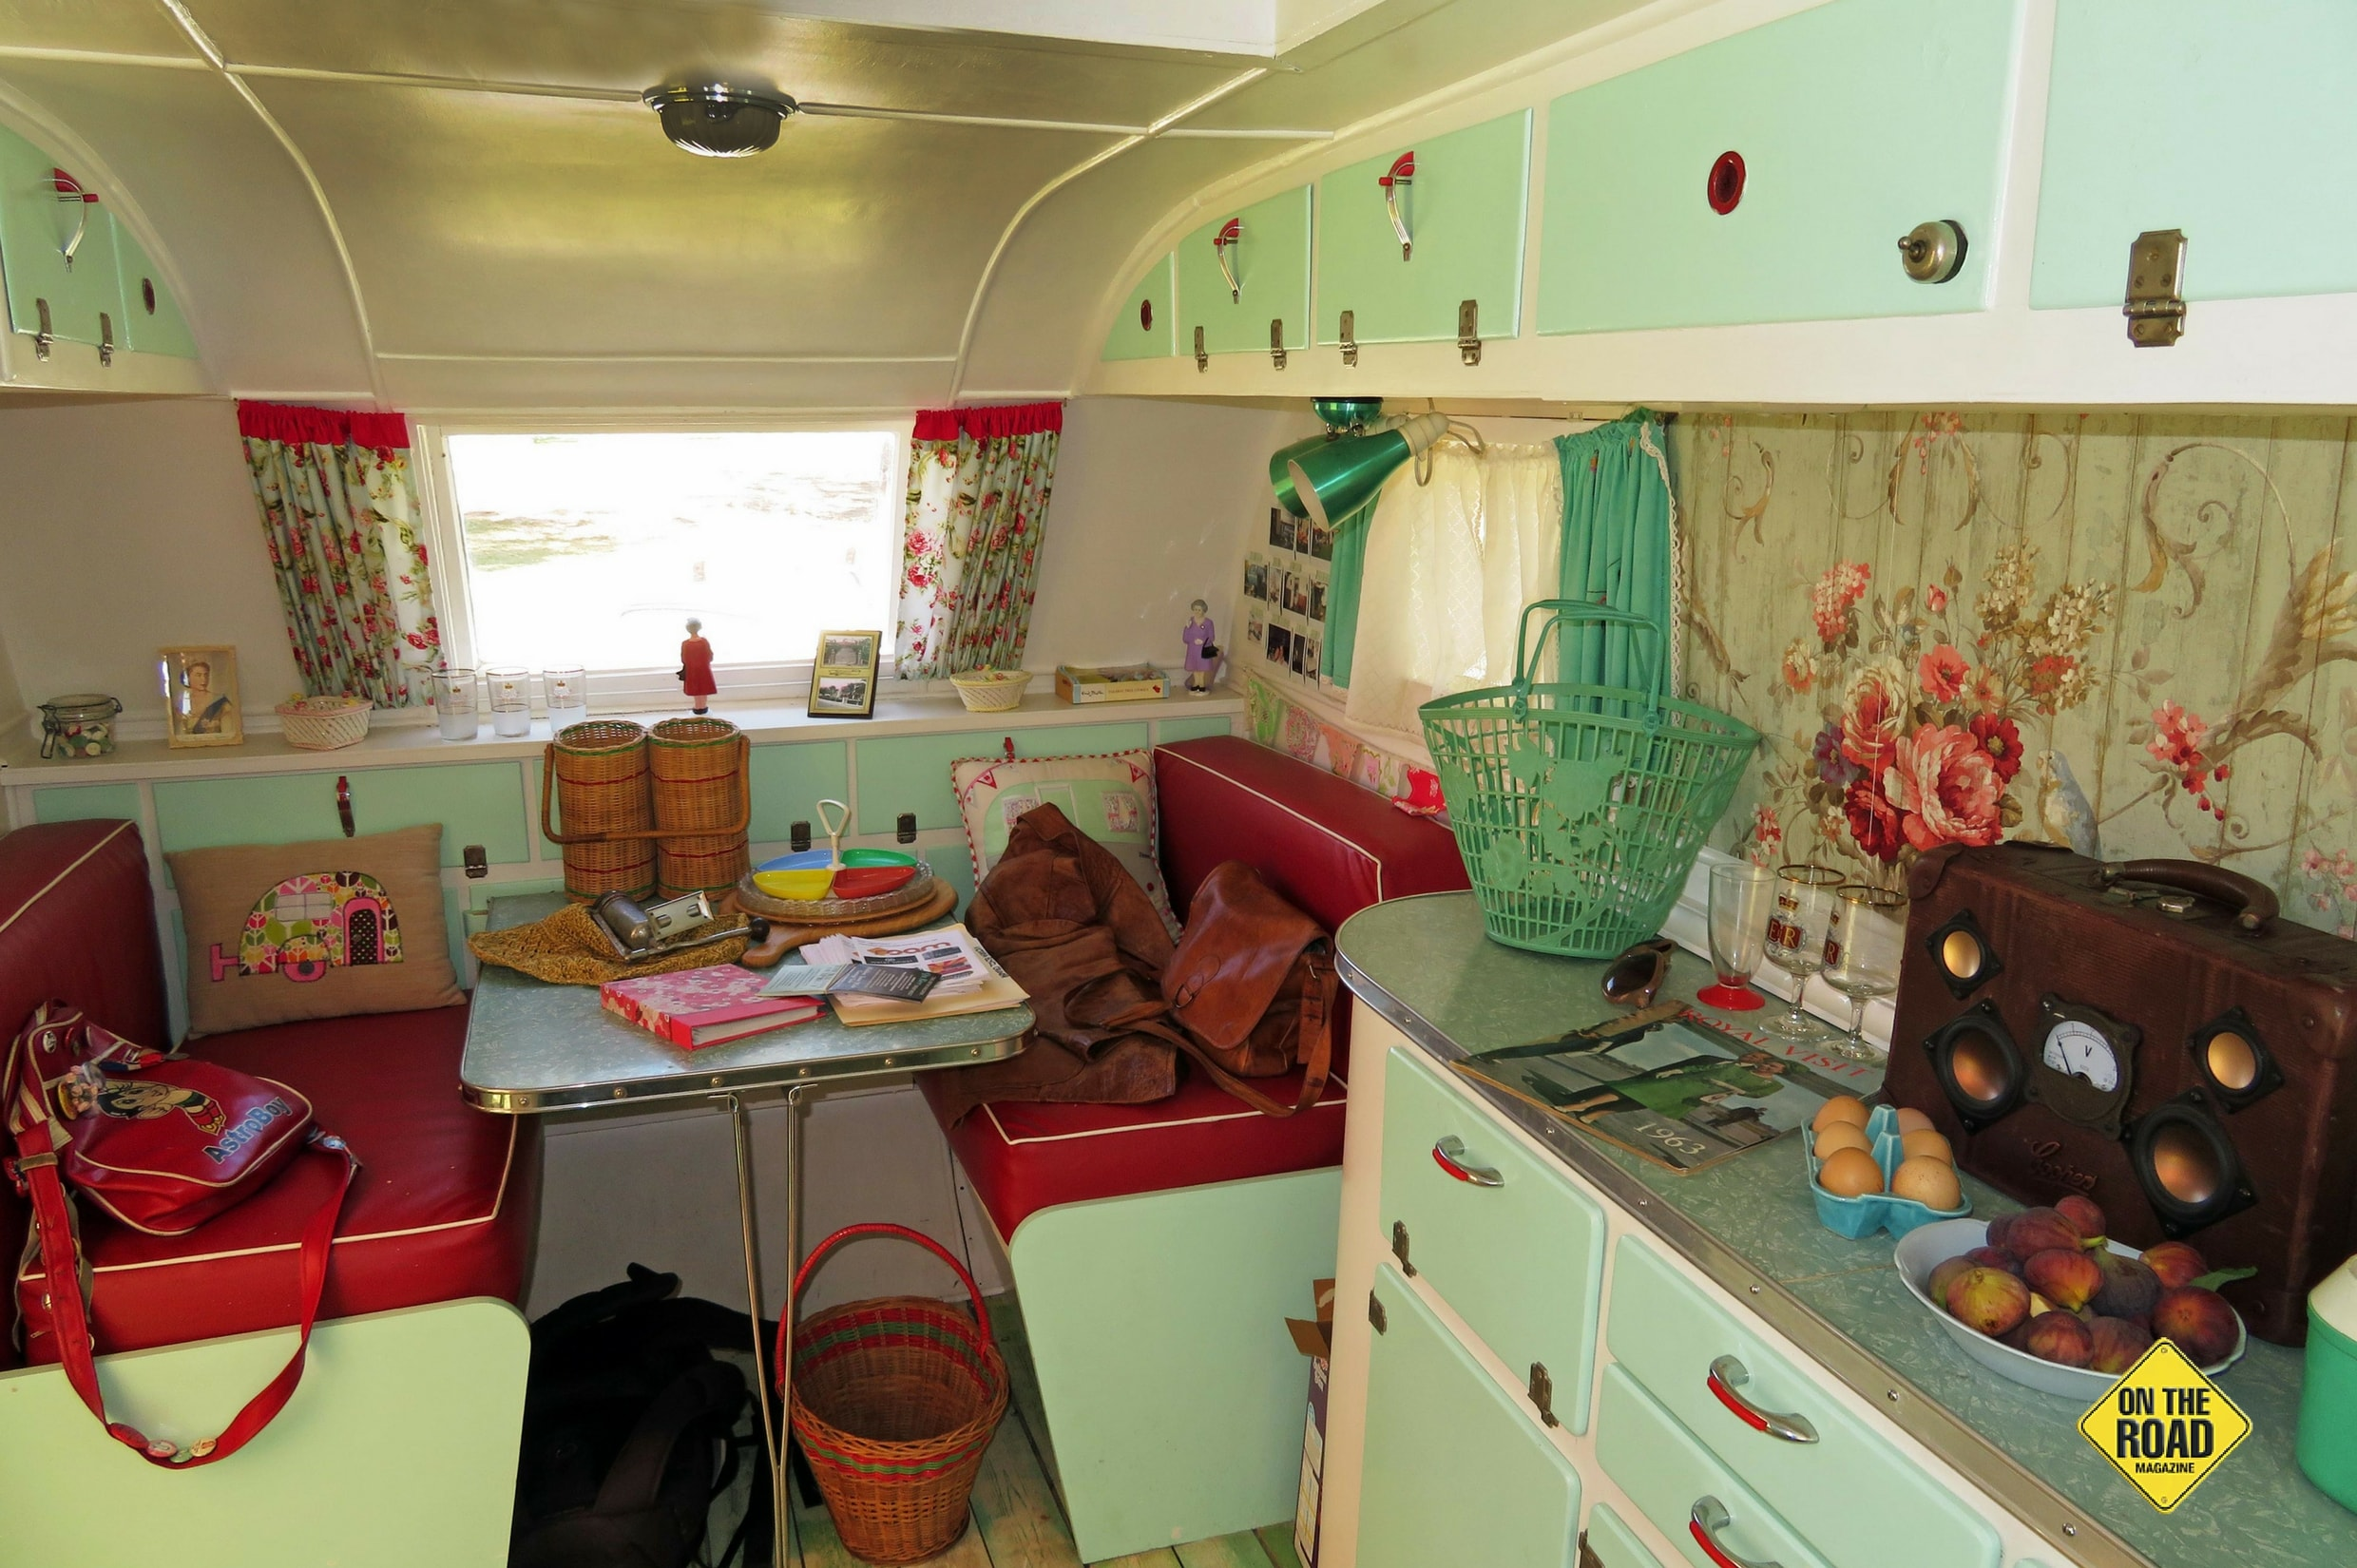 Stepping inside a vintage caravan is like going back in time to the mid-20th century